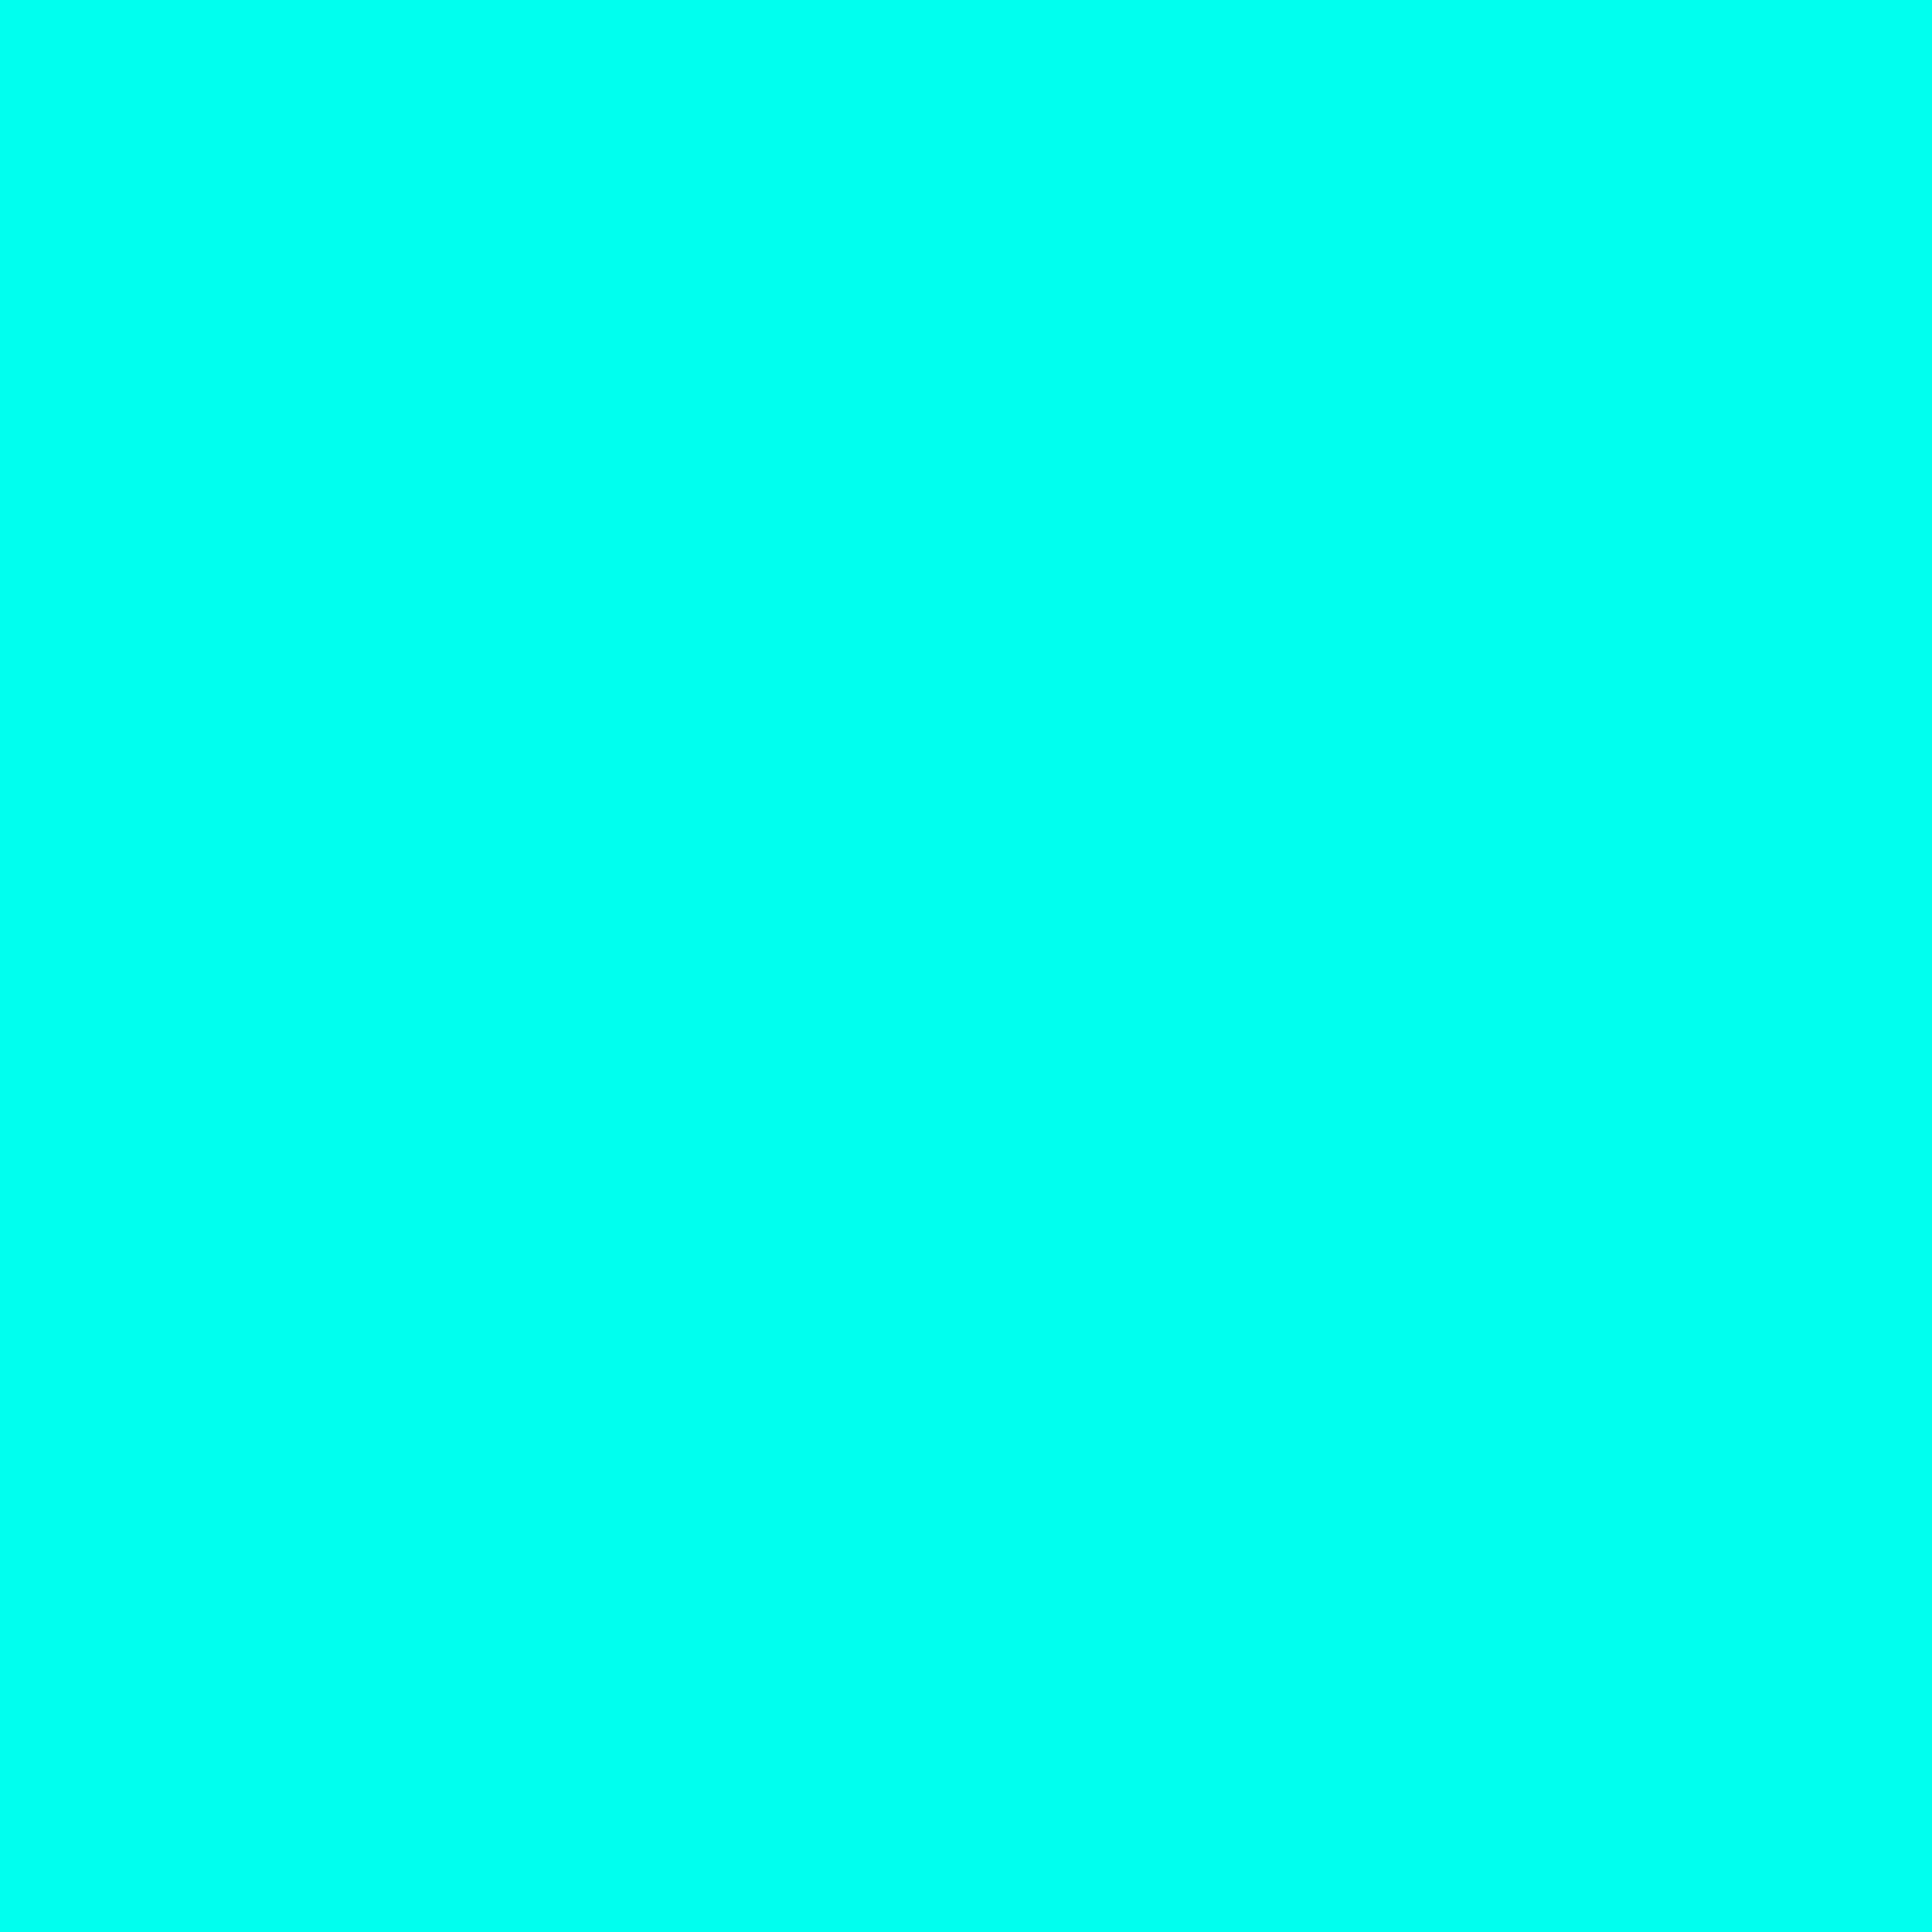 3600x3600 Turquoise Blue Solid Color Background